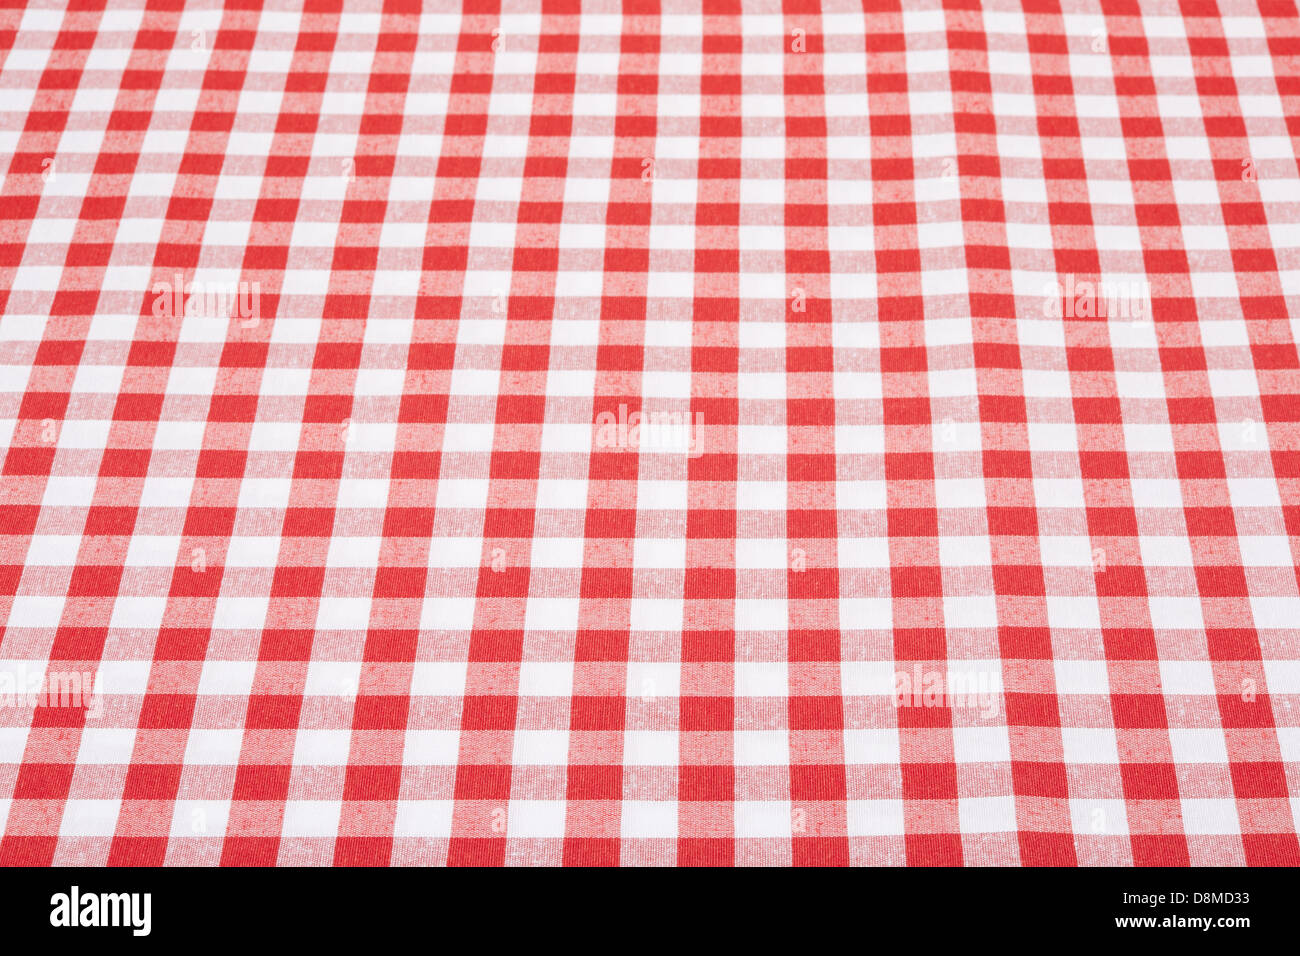 Merveilleux Red And White Gingham Tablecloth Texture Background In Perspective